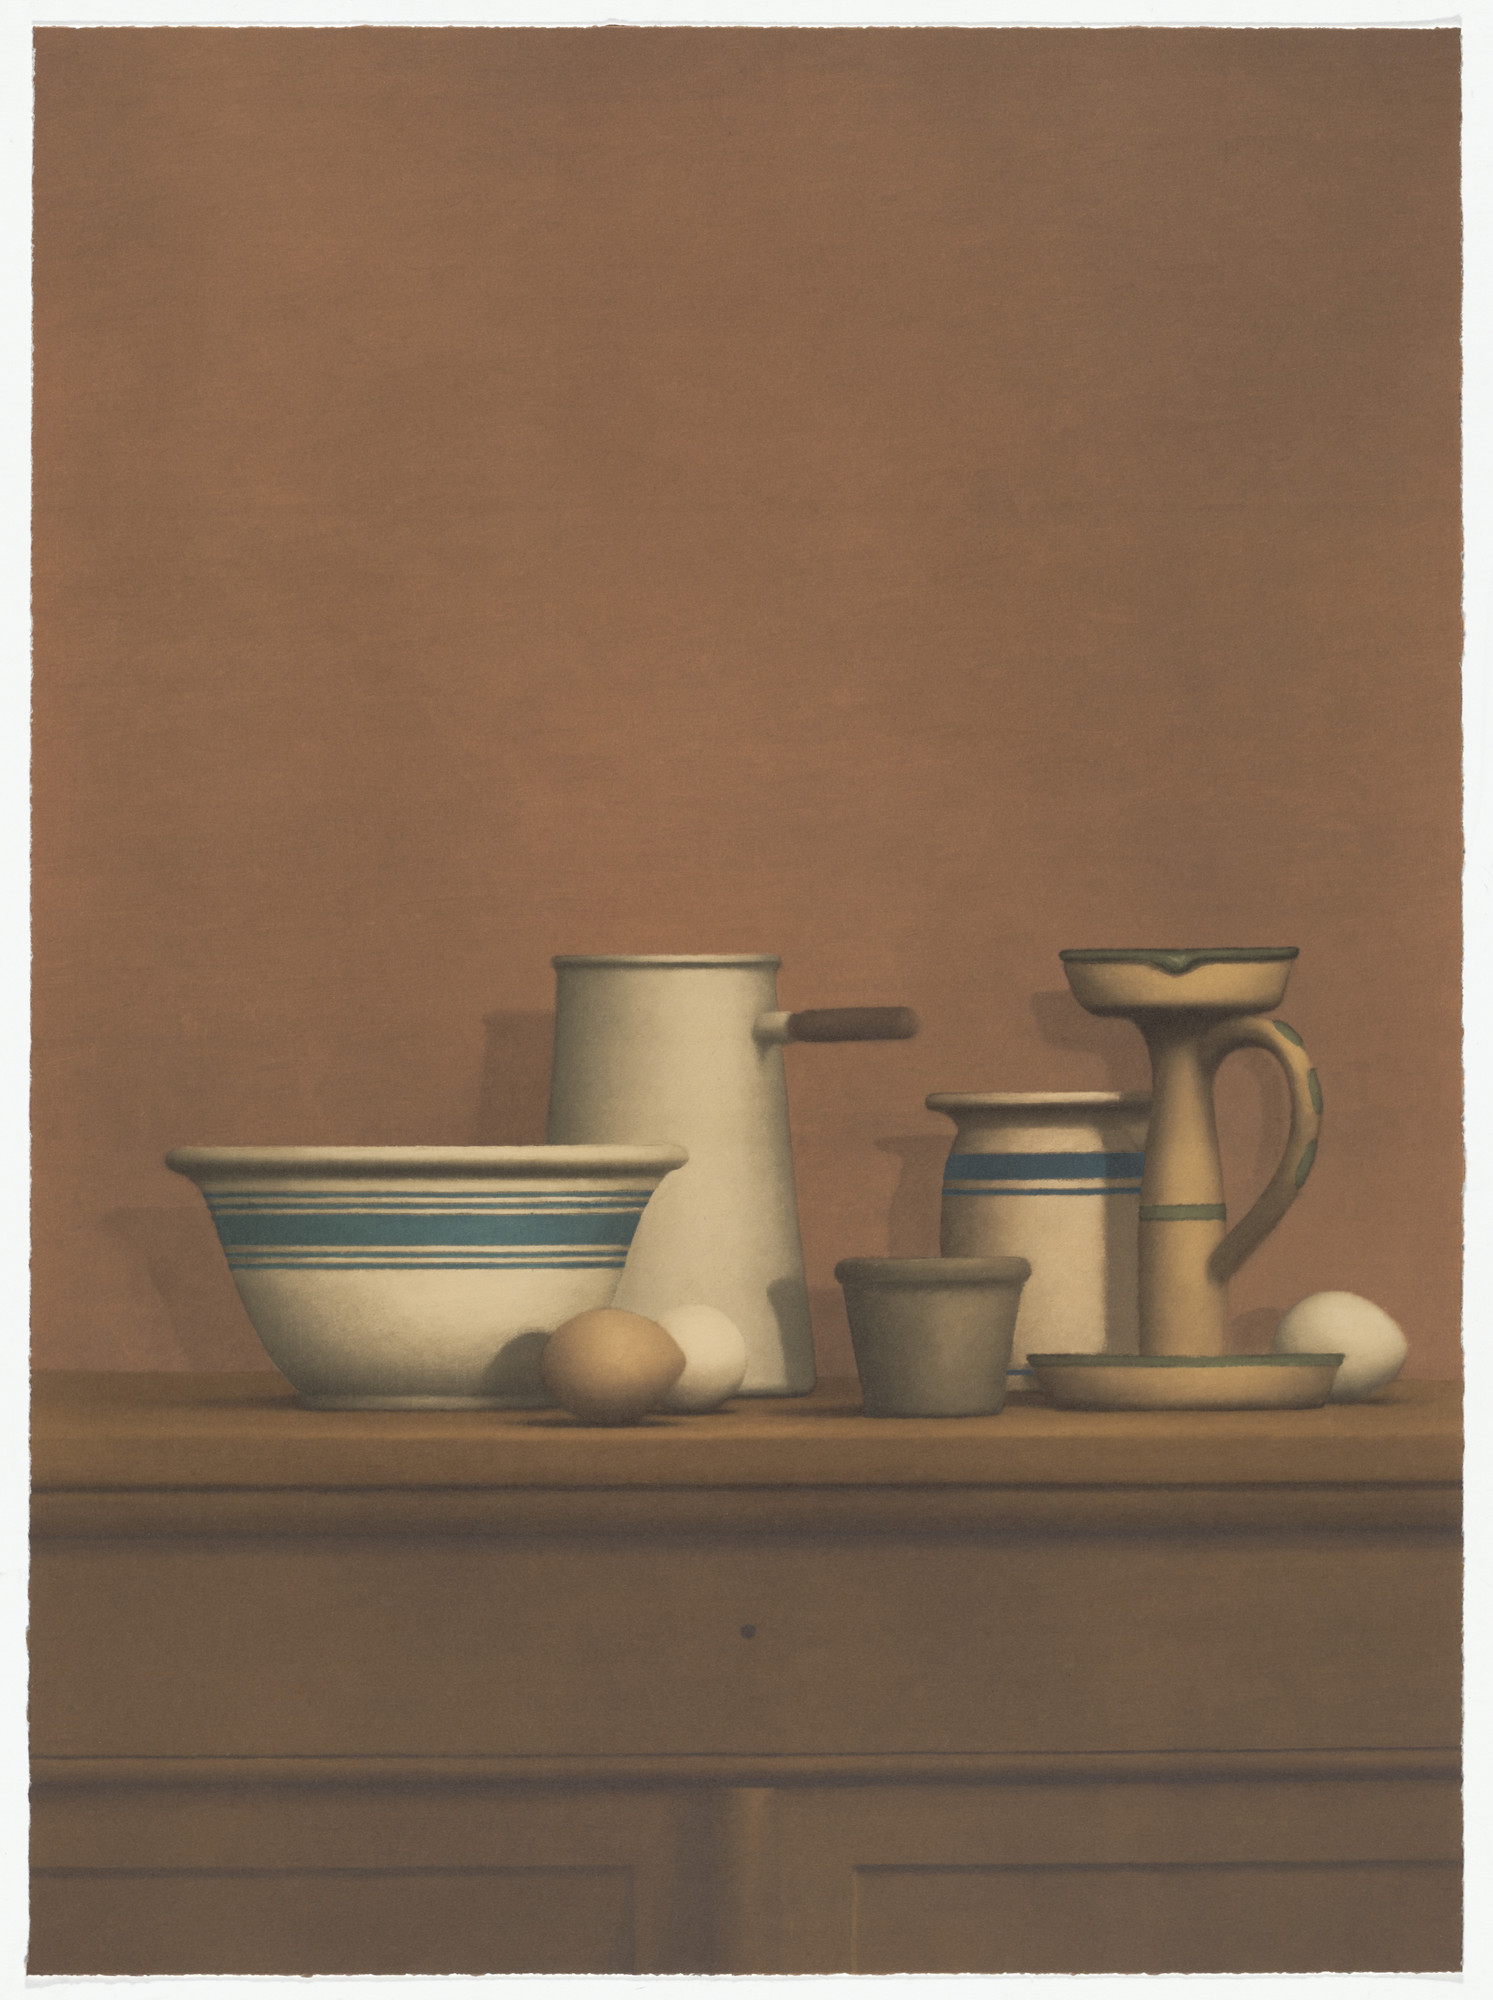 William Bailey. Still Life with Eggs, Candlestick and Bowl from America: The Third Century. 1975